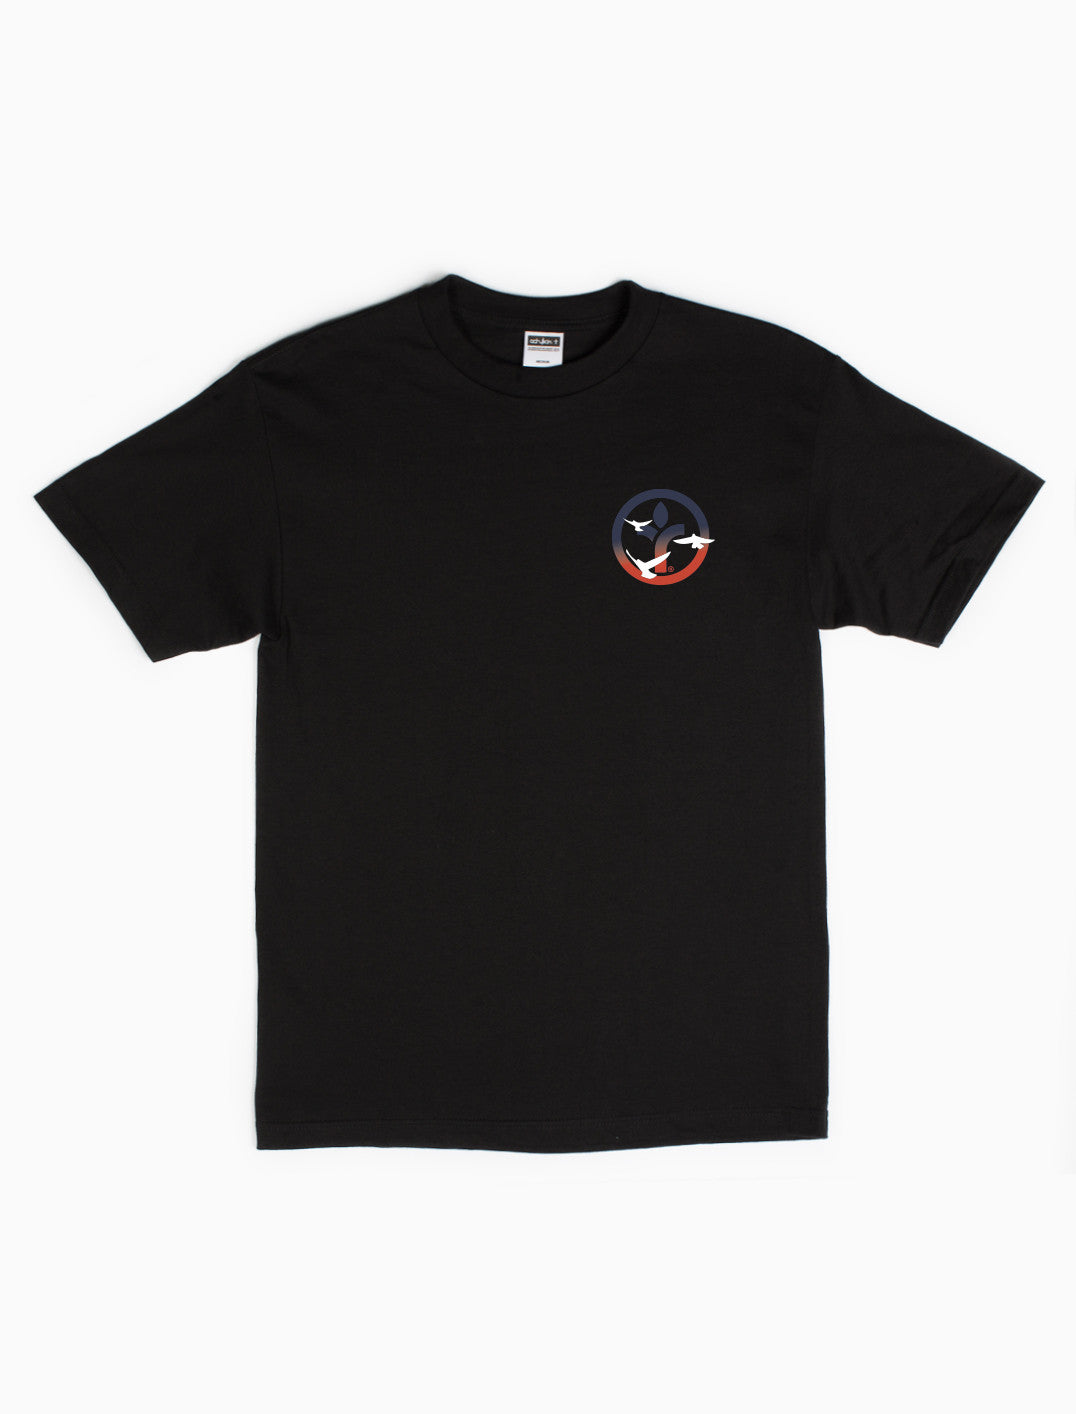 Chaos Pocket Tee